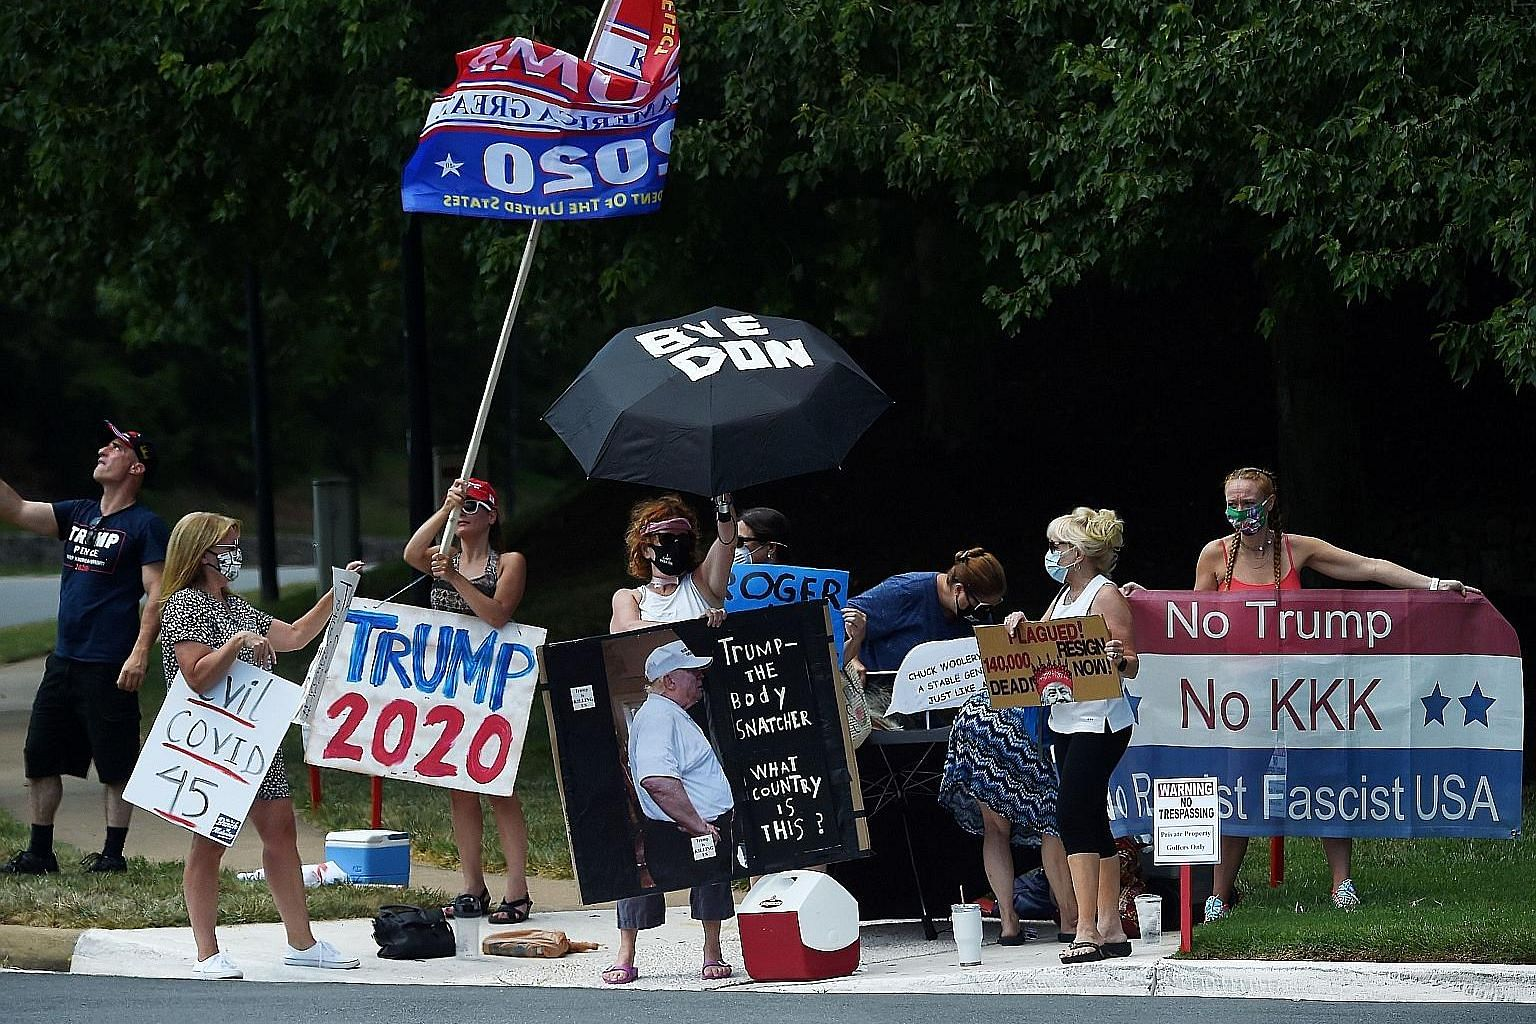 Protesters and supporters of US President Donald Trump sending their respective messages outside the Trump National Golf Club in Sterling, Virginia, on Sunday.